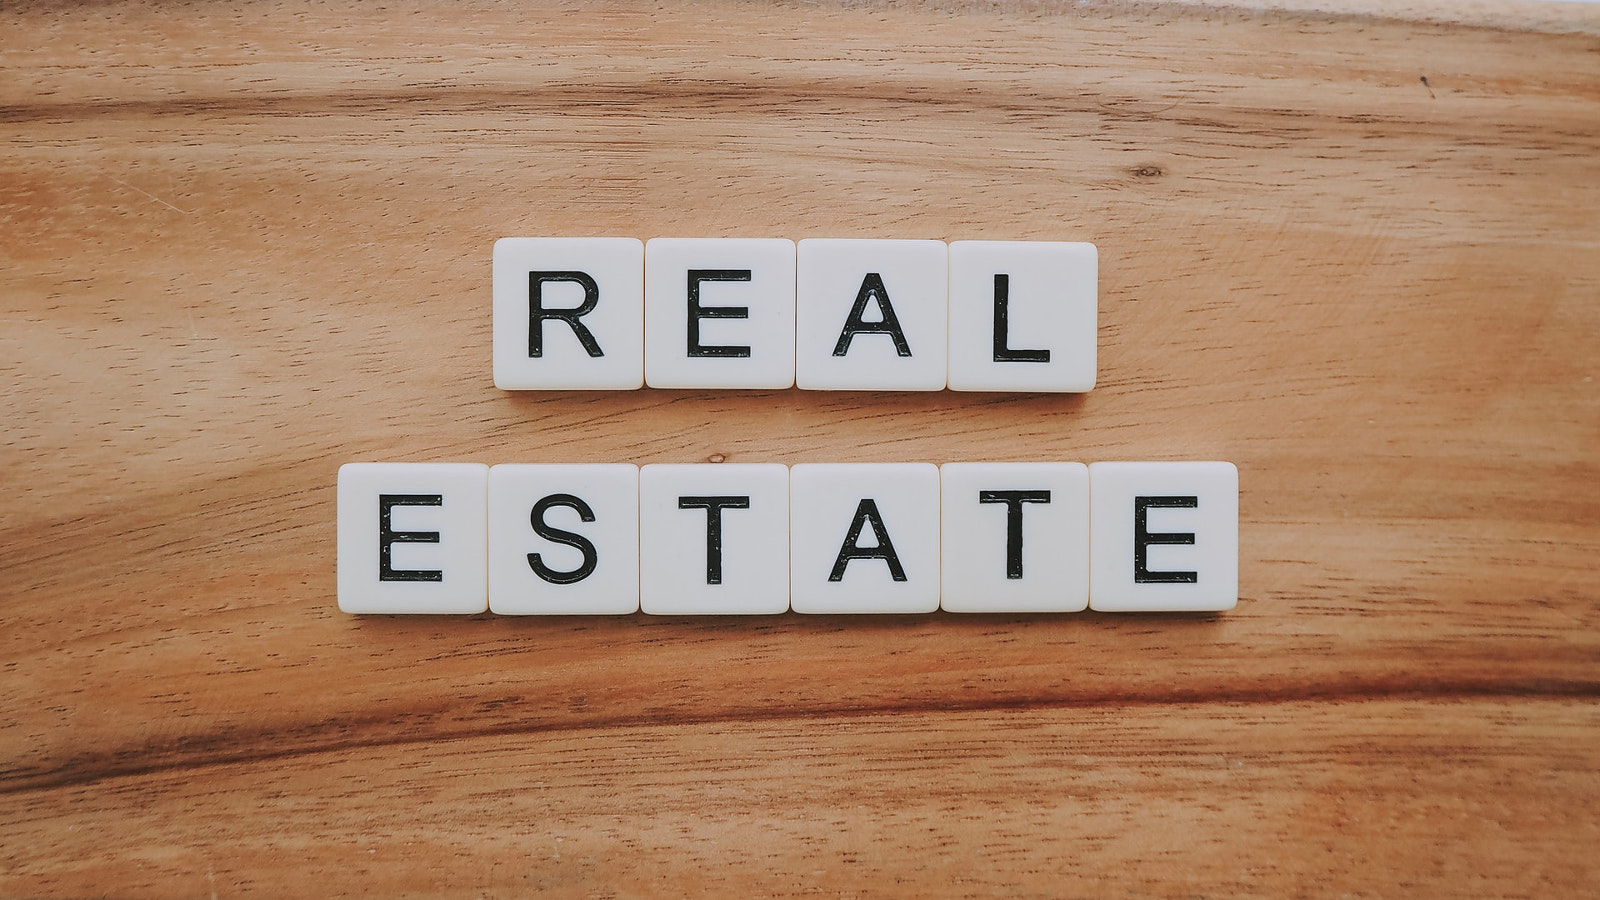 Here's a collection of real estate quotes from some of history's greatest minds. Reflect on these quotes the next time you need a little motivation to keep going in your real estate journey.